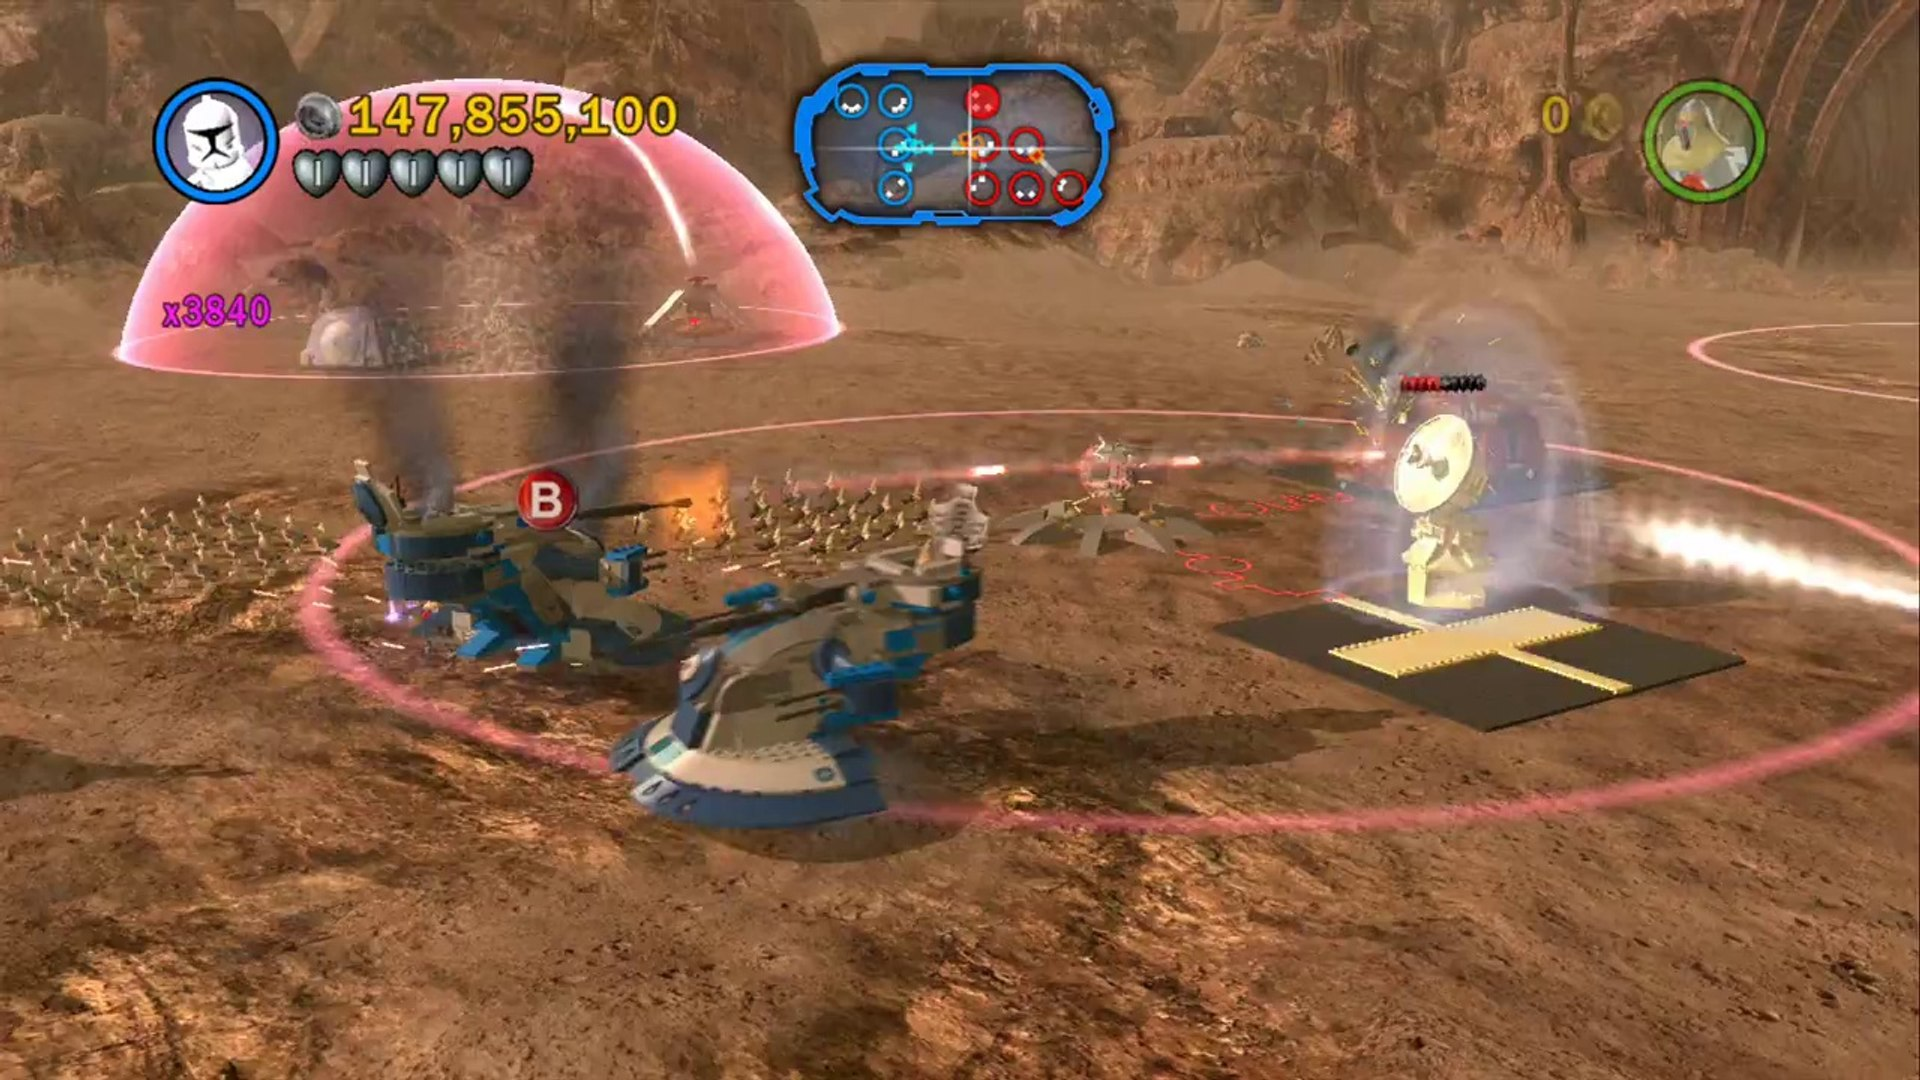 LEGO Star Wars III  The Clone Wars - 100% Guide #6 - Weapons Factory (All Minikits)